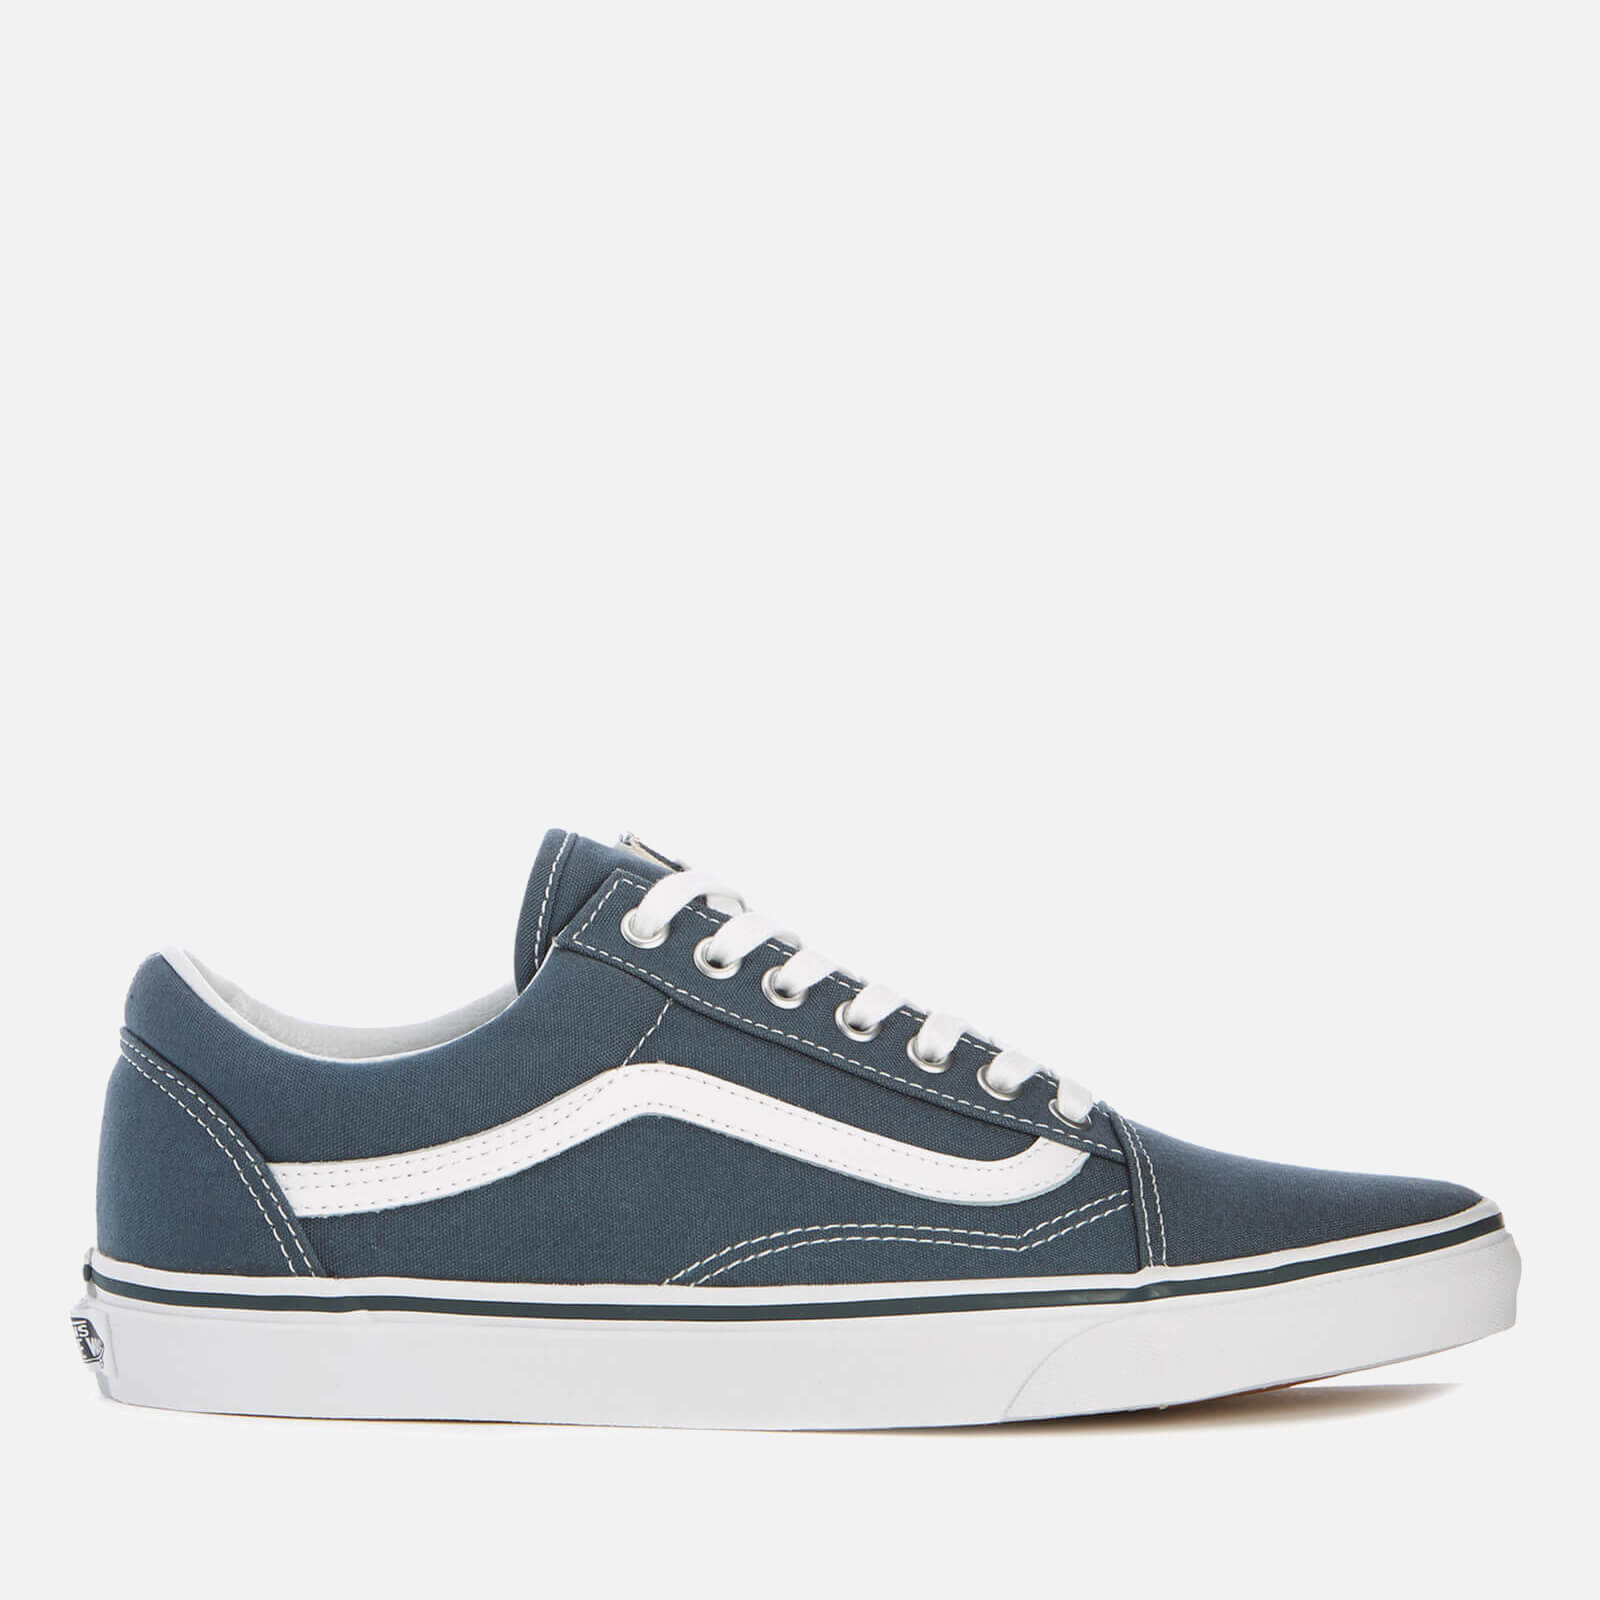 7fd65c6087 Vans Men s Old Skool Canvas Trainers - Dark Slate True White Mens Footwear